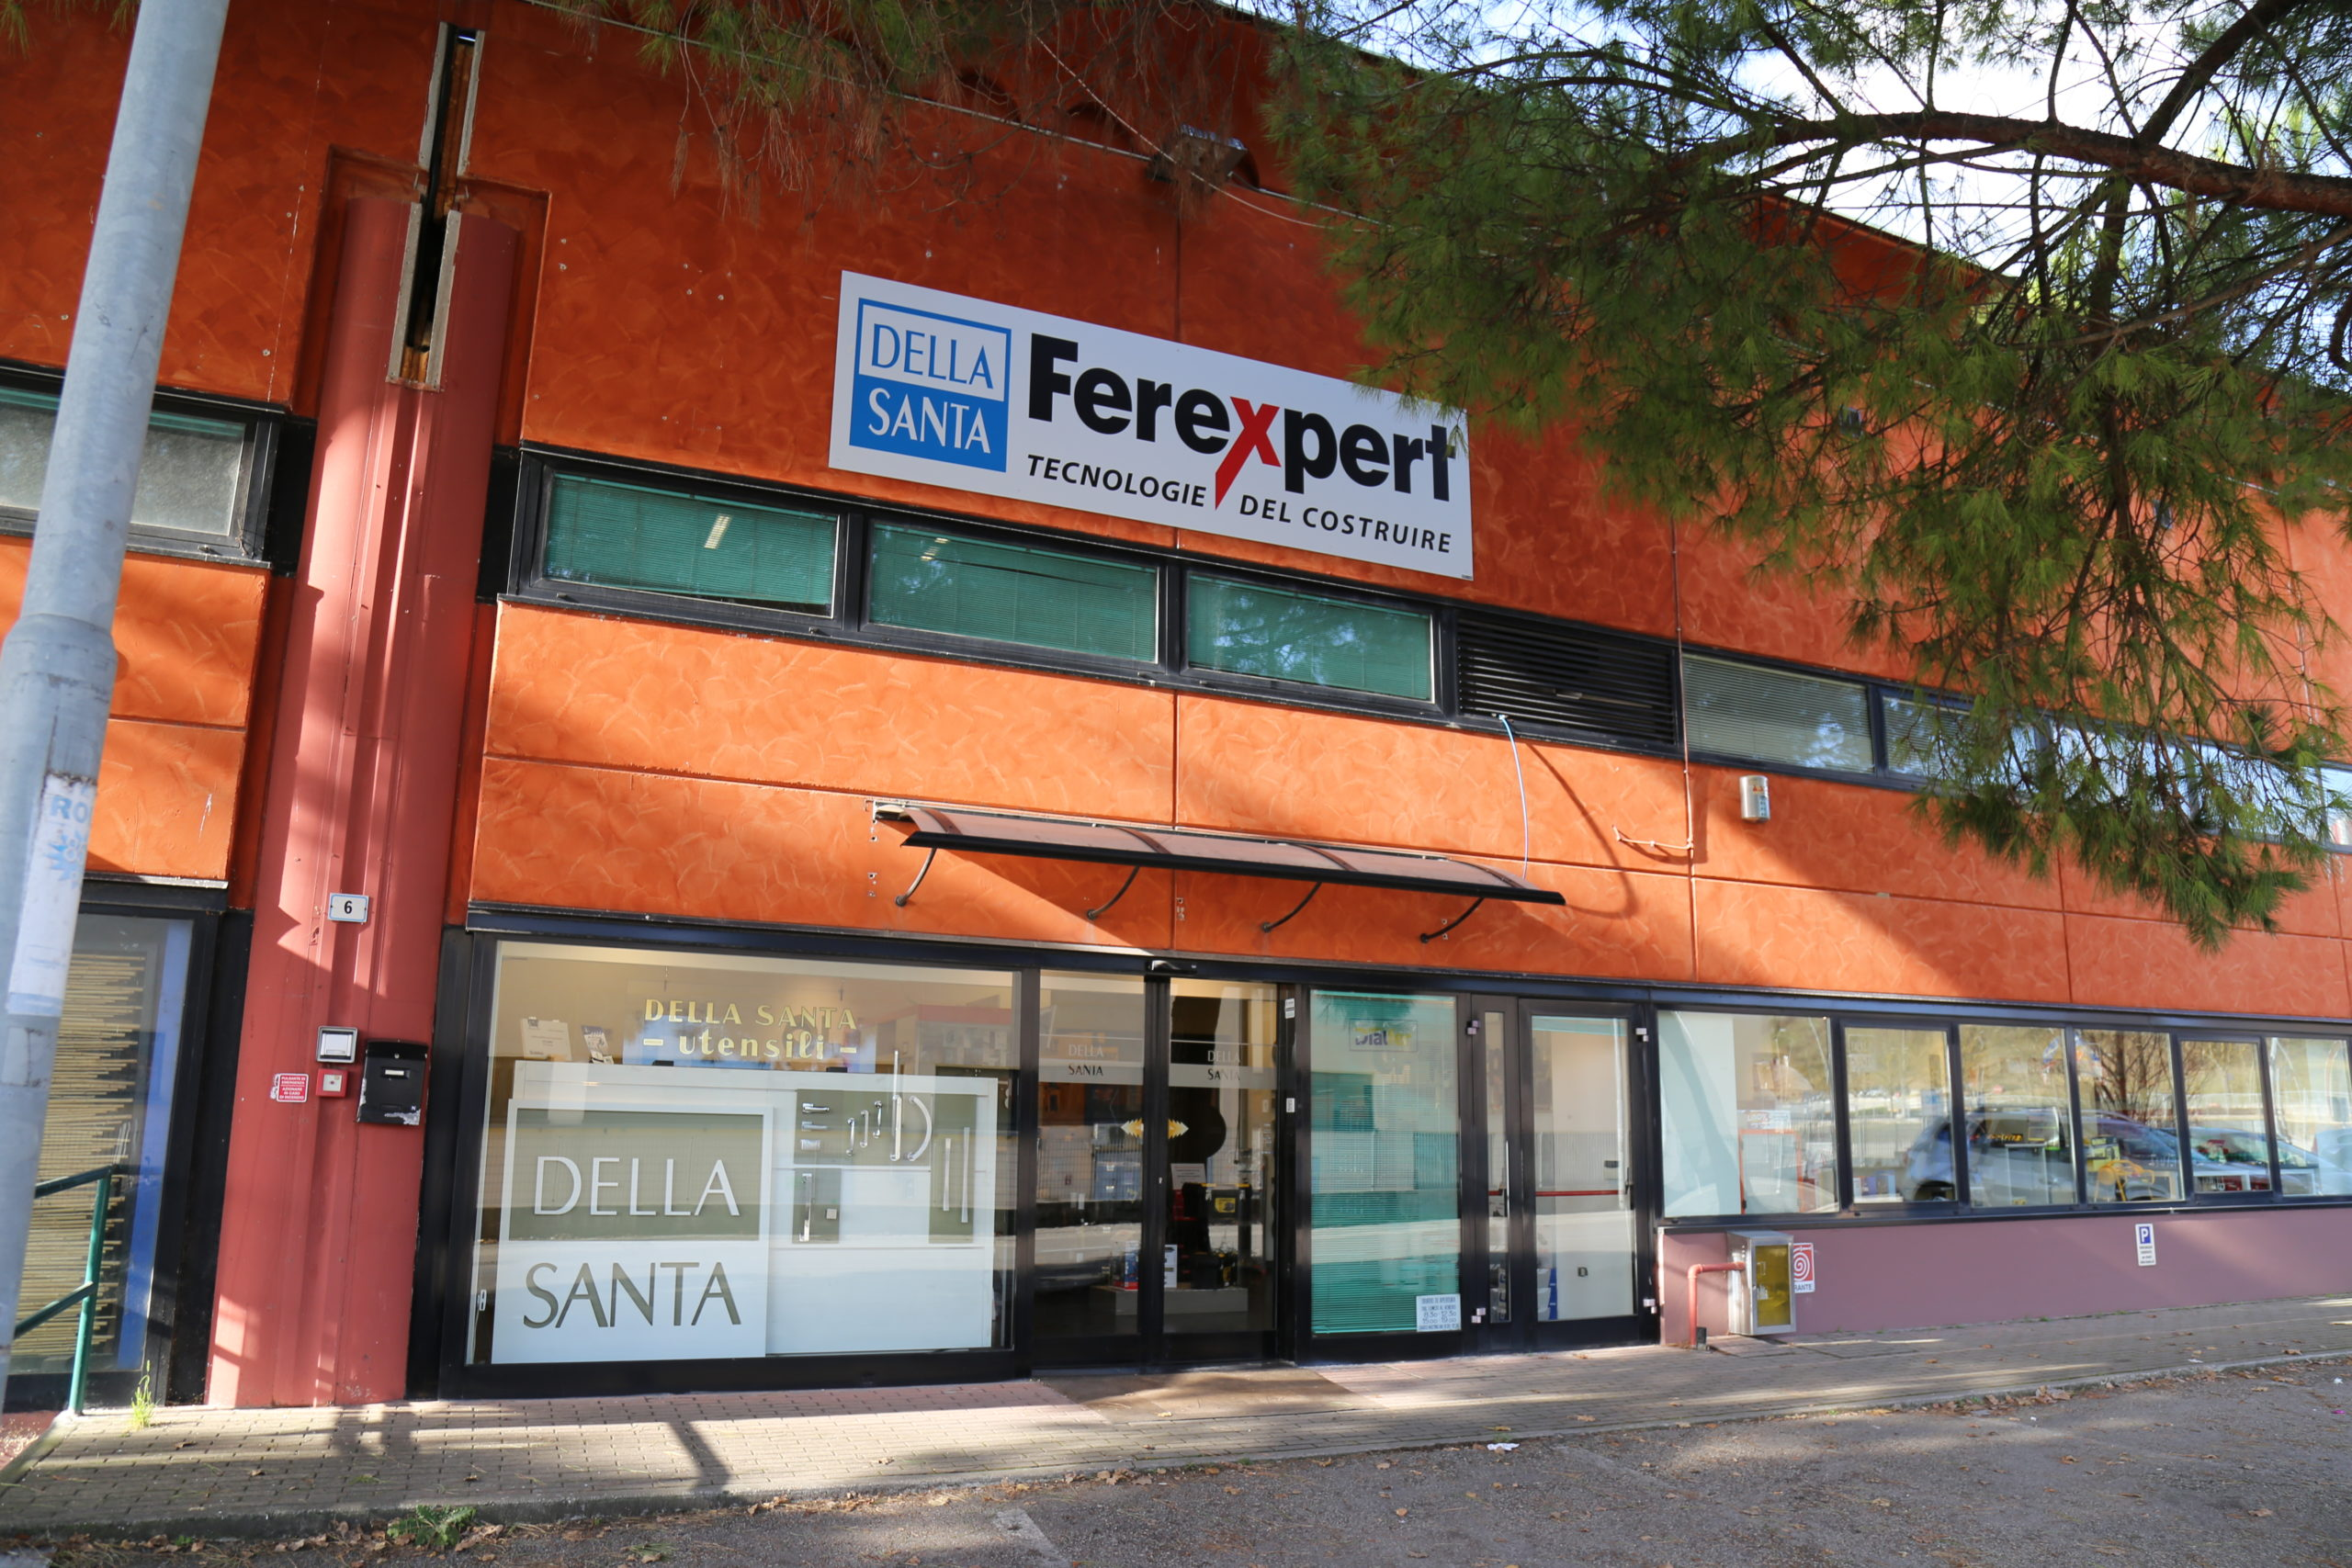 Ferexpert spa